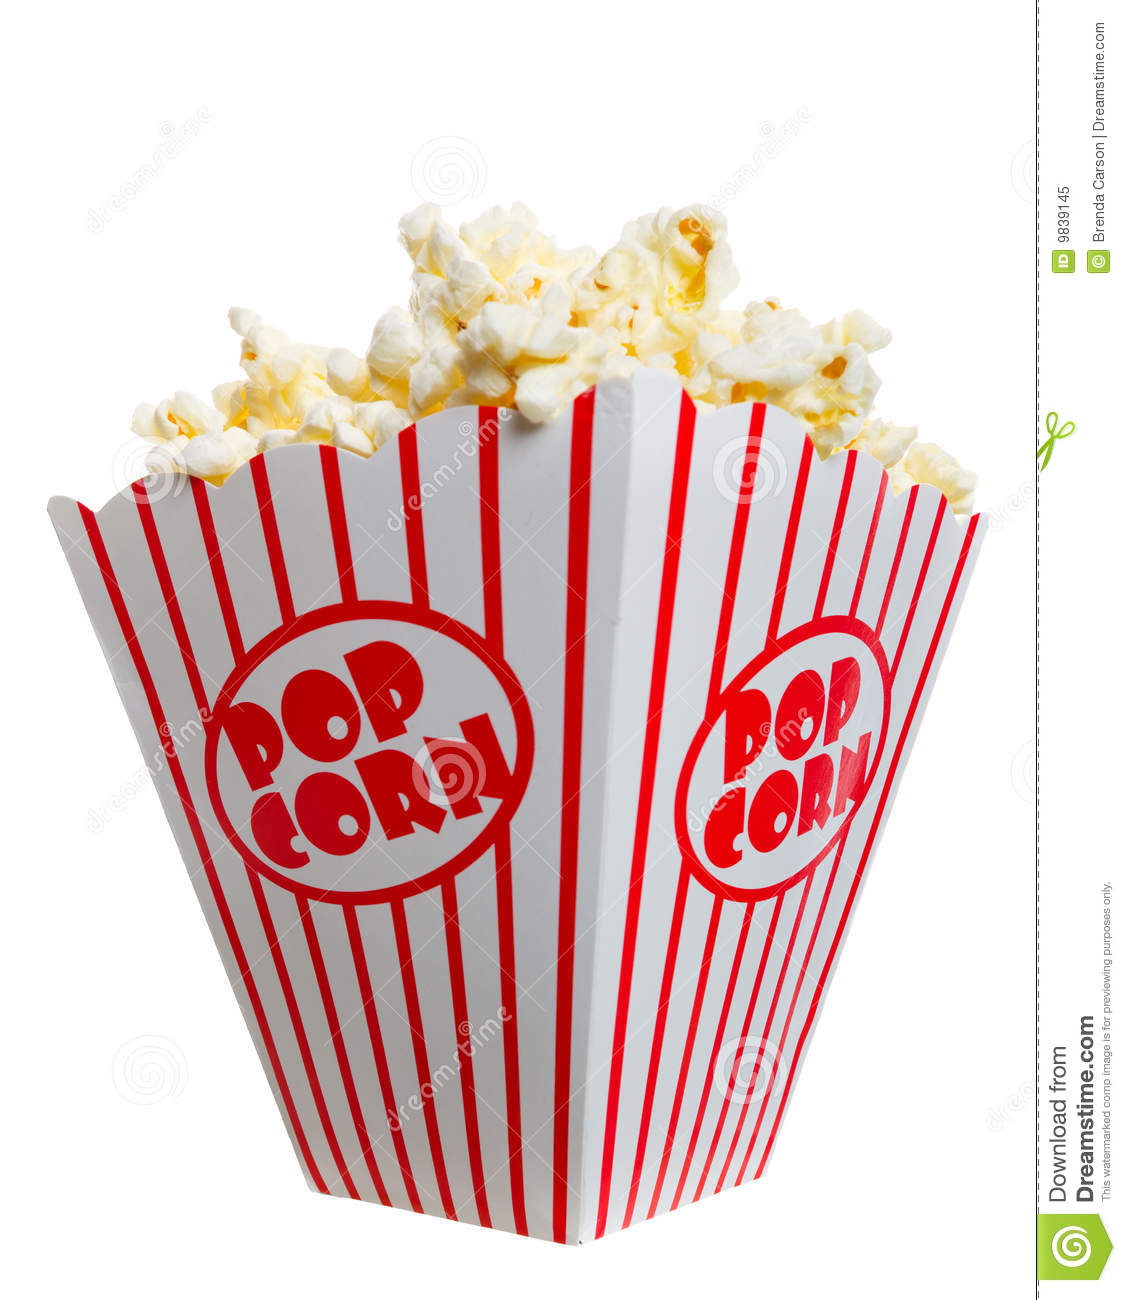 Watch more like Graphic Of Popcorn Popping